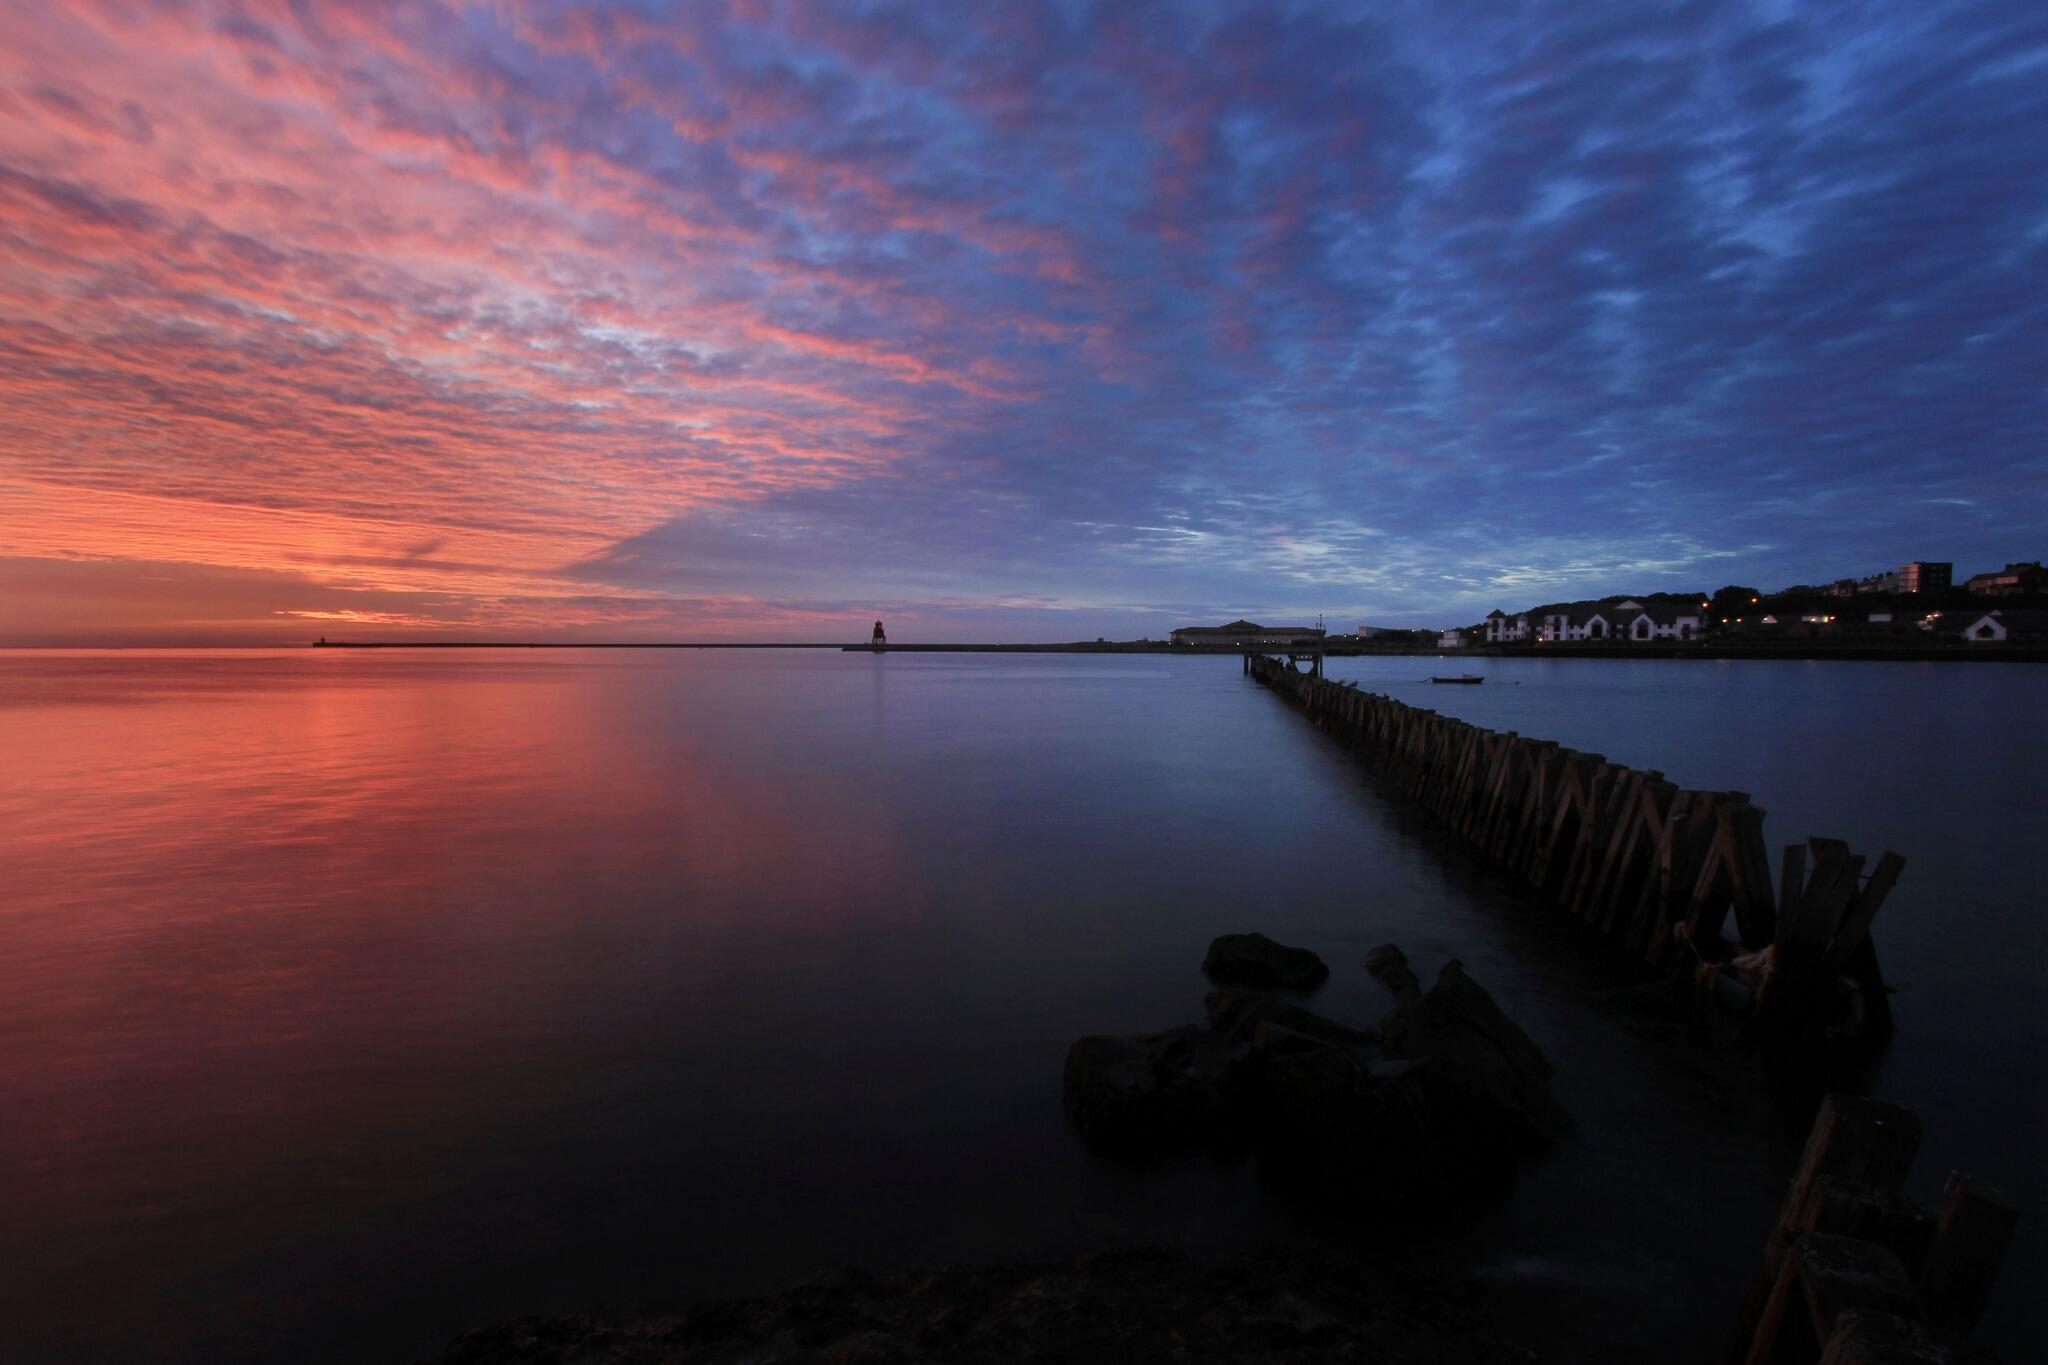 RT @Martbish101: View From North Shields Fish Quay #northeasthour http://t.co/IxQk6gD504